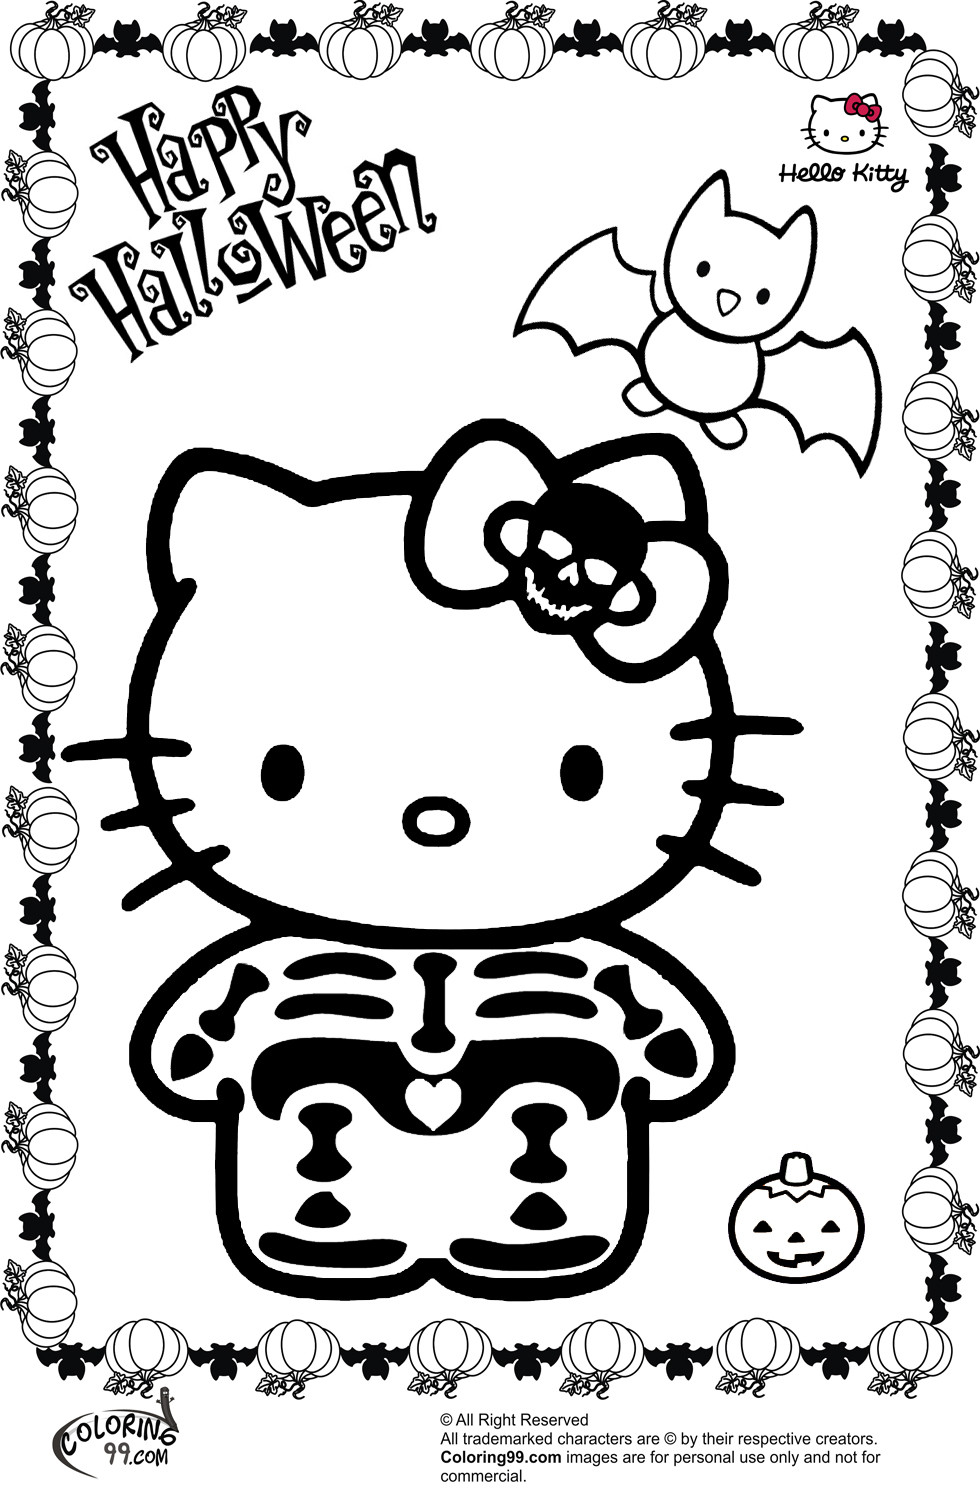 Hello Kitty Halloween Coloring Pages For Kids  Hello Kitty Halloween Coloring Pages